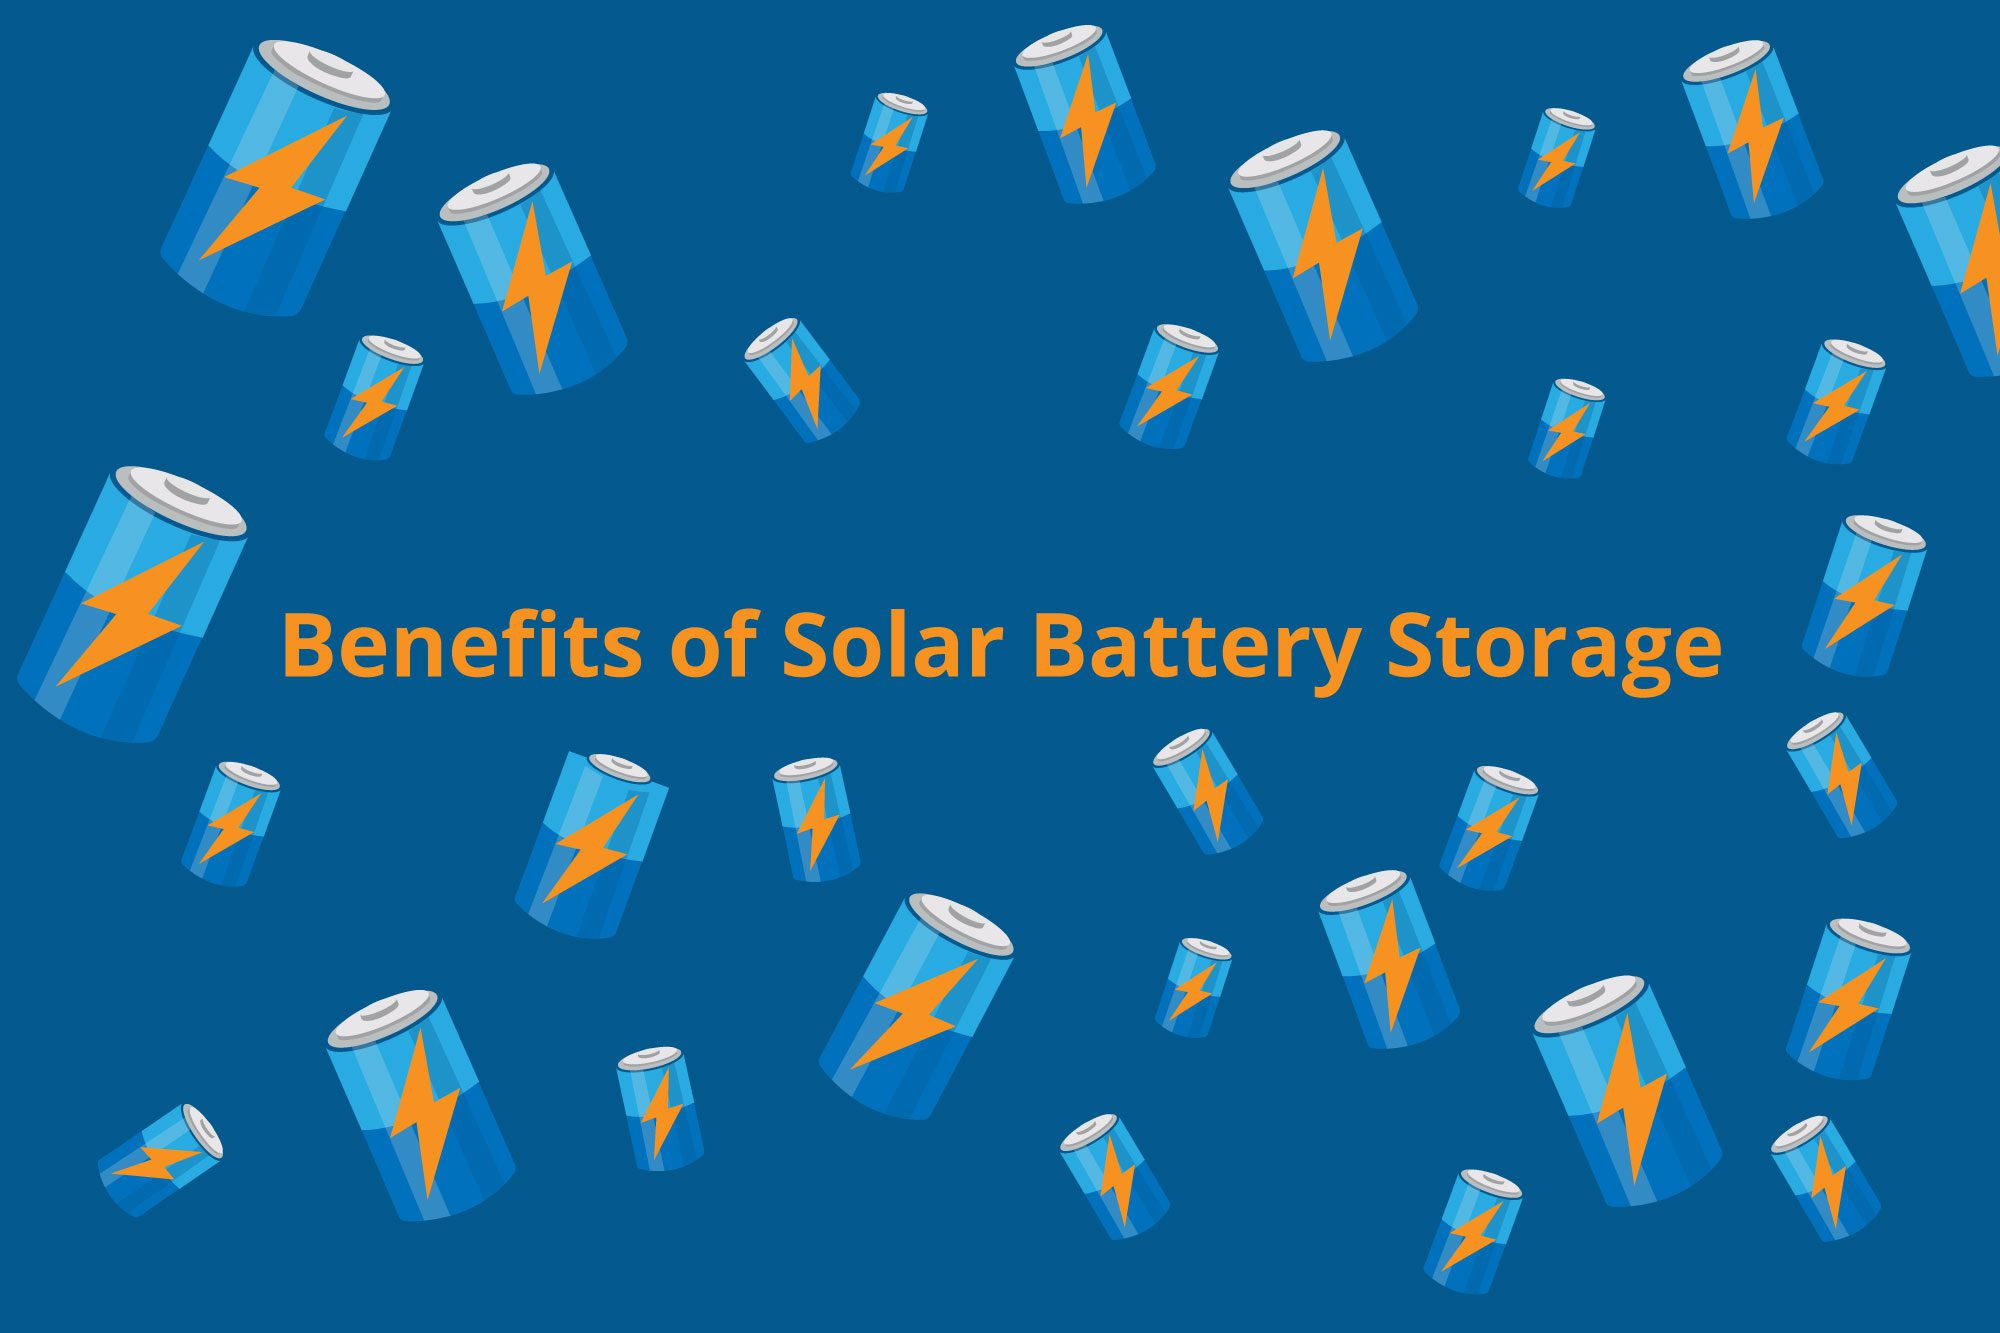 Benefits of Solar Battery Storage in MA